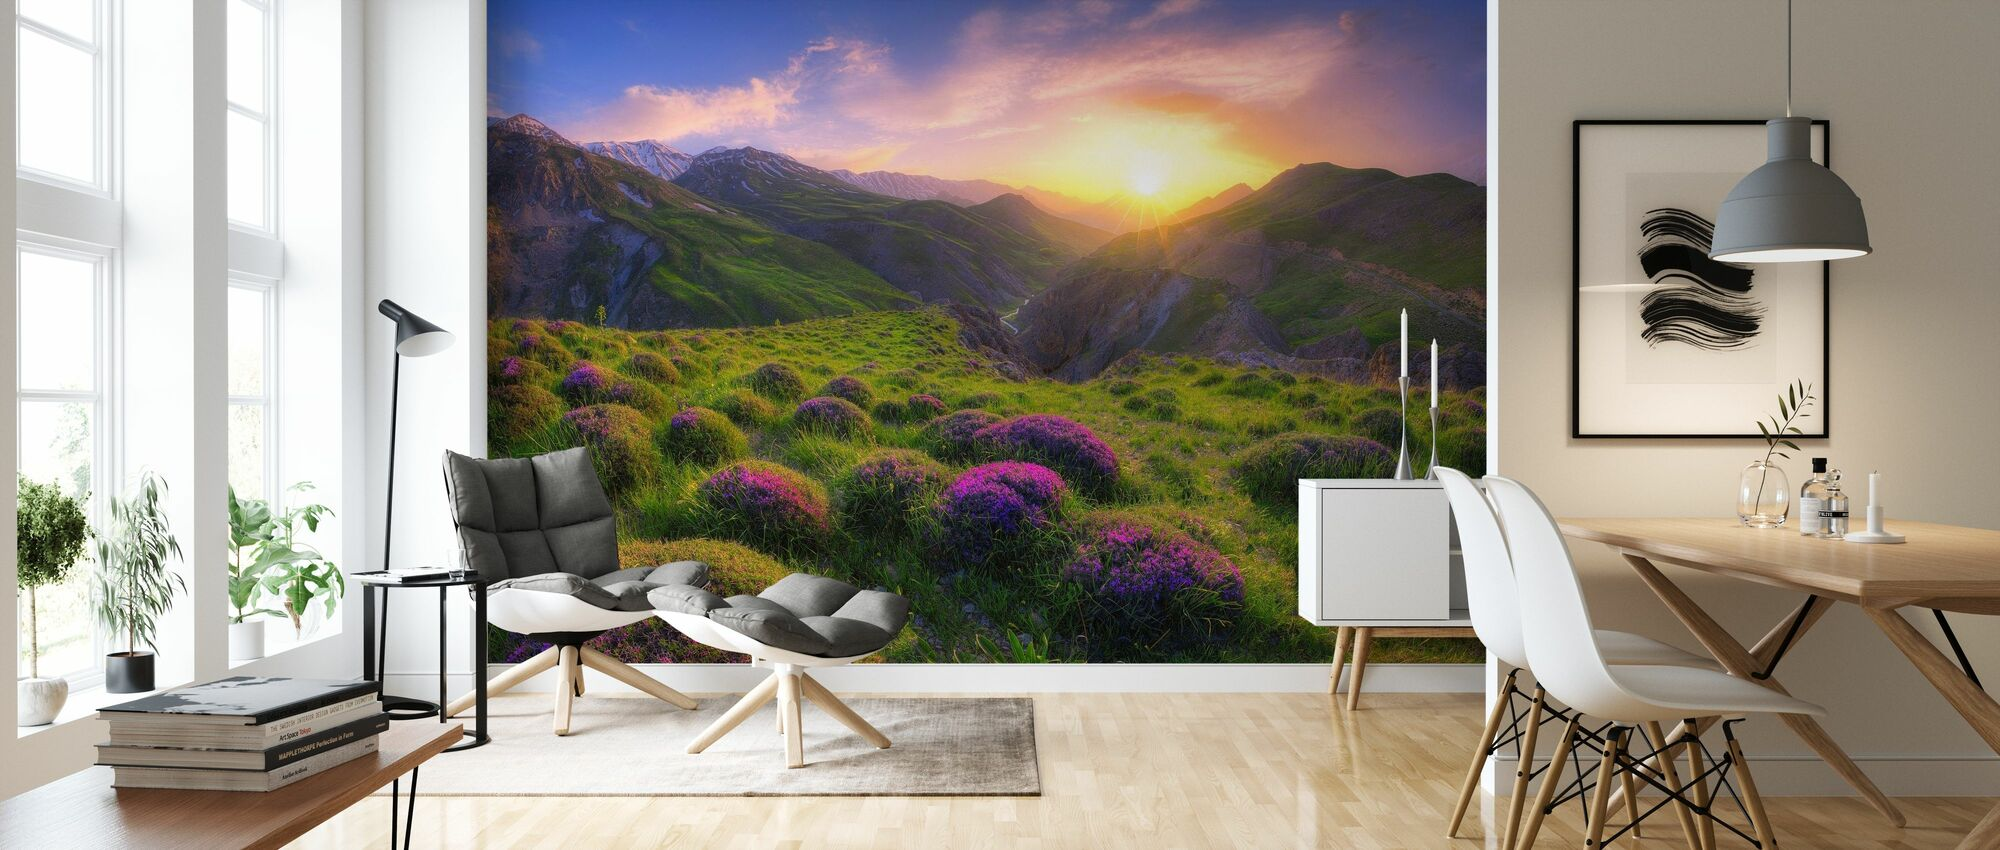 Spring in Show - Wallpaper - Living Room